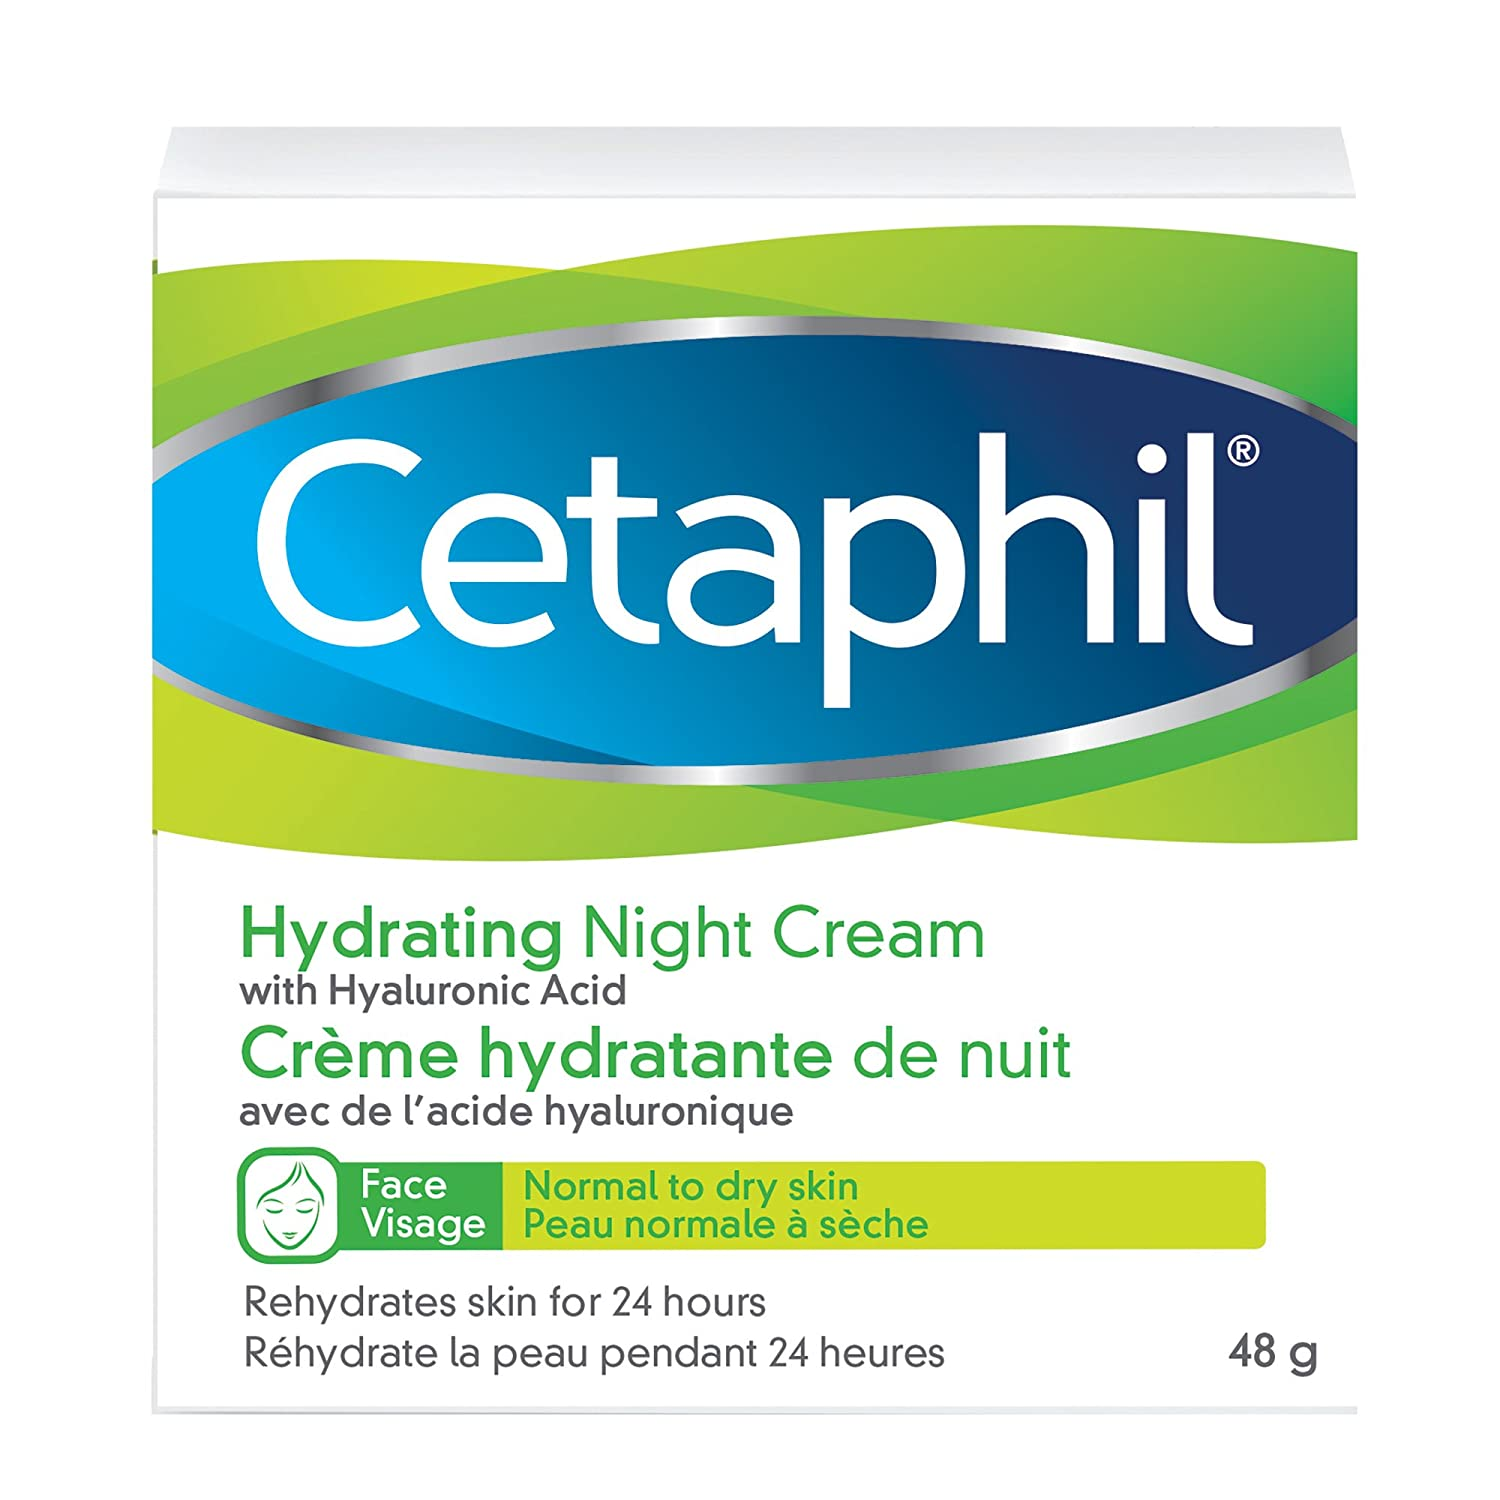 Cetaphil Hydrating Night Cream with Hyaluronic Acid, 48g Galderma